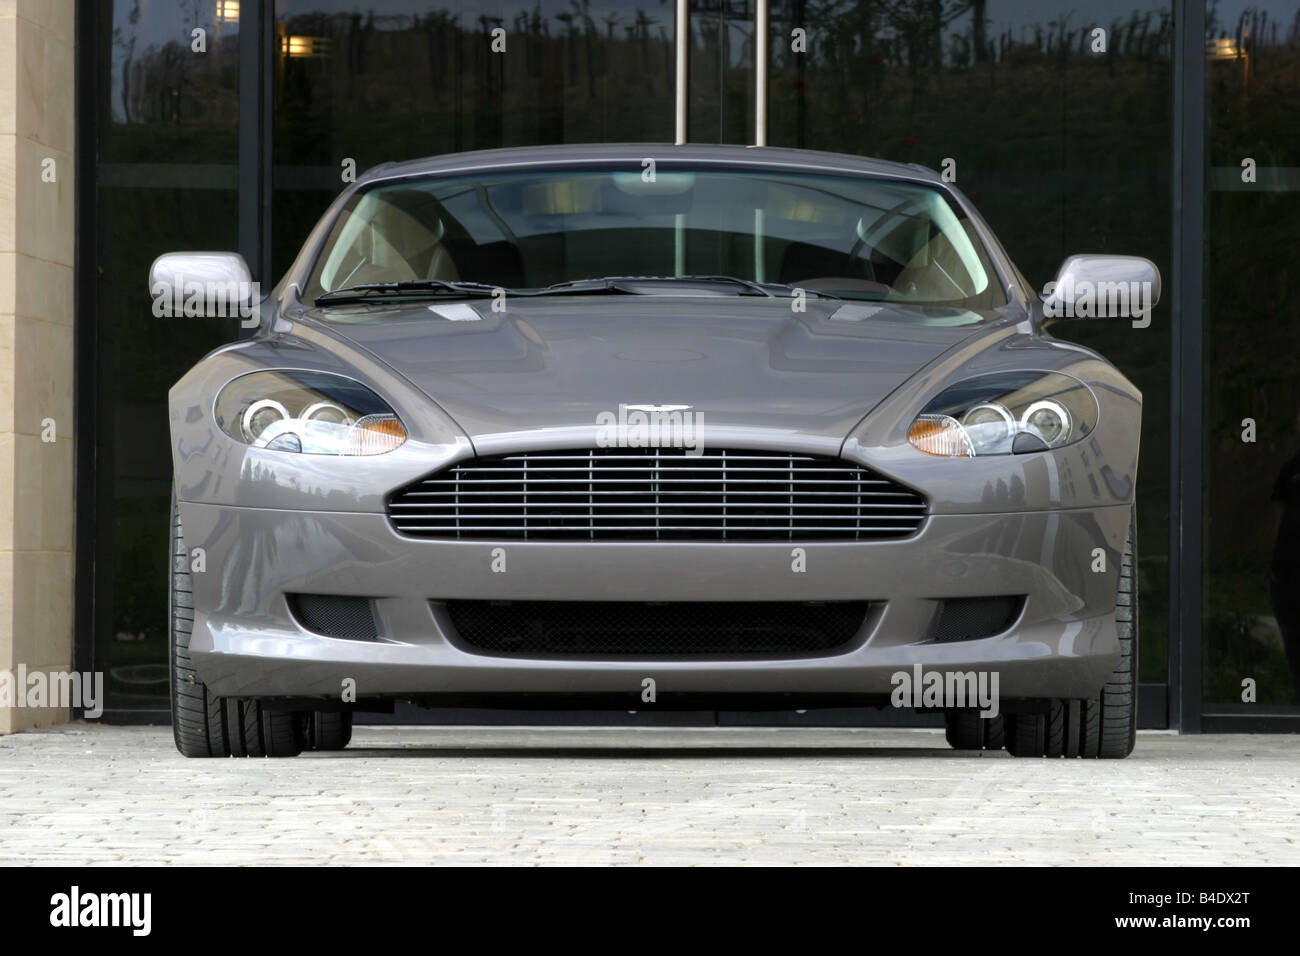 Car Aston Martin Db9 Roadster Coupe Coupe Silver Anthracite